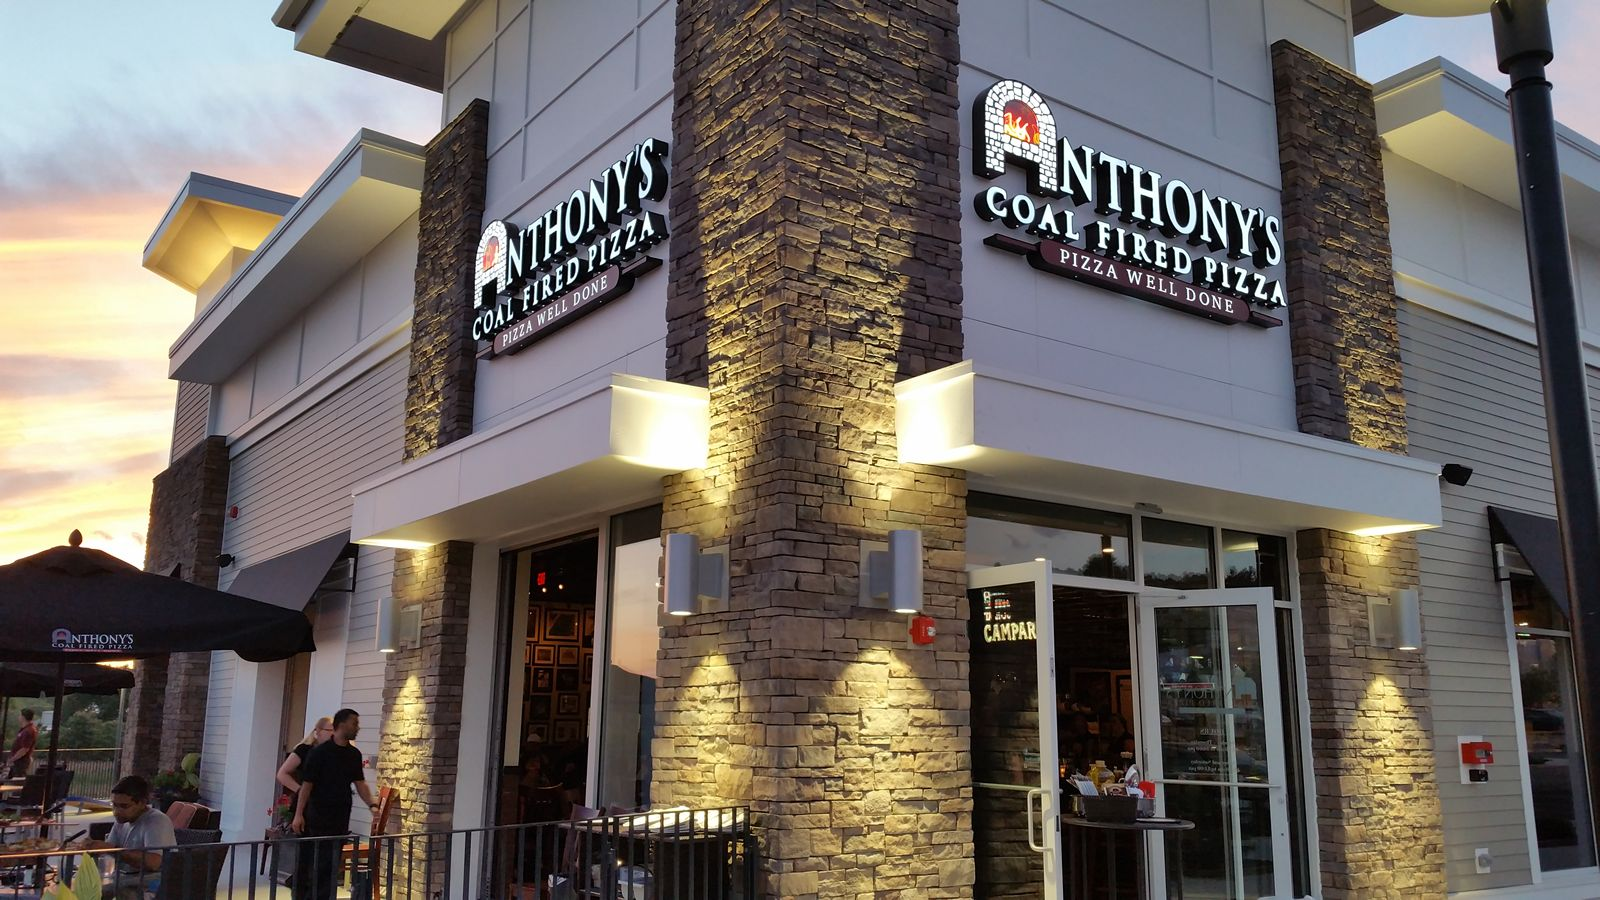 Anthony's Coal Fired Pizza Gears up for Football Season with New Charity Partnership in Boston